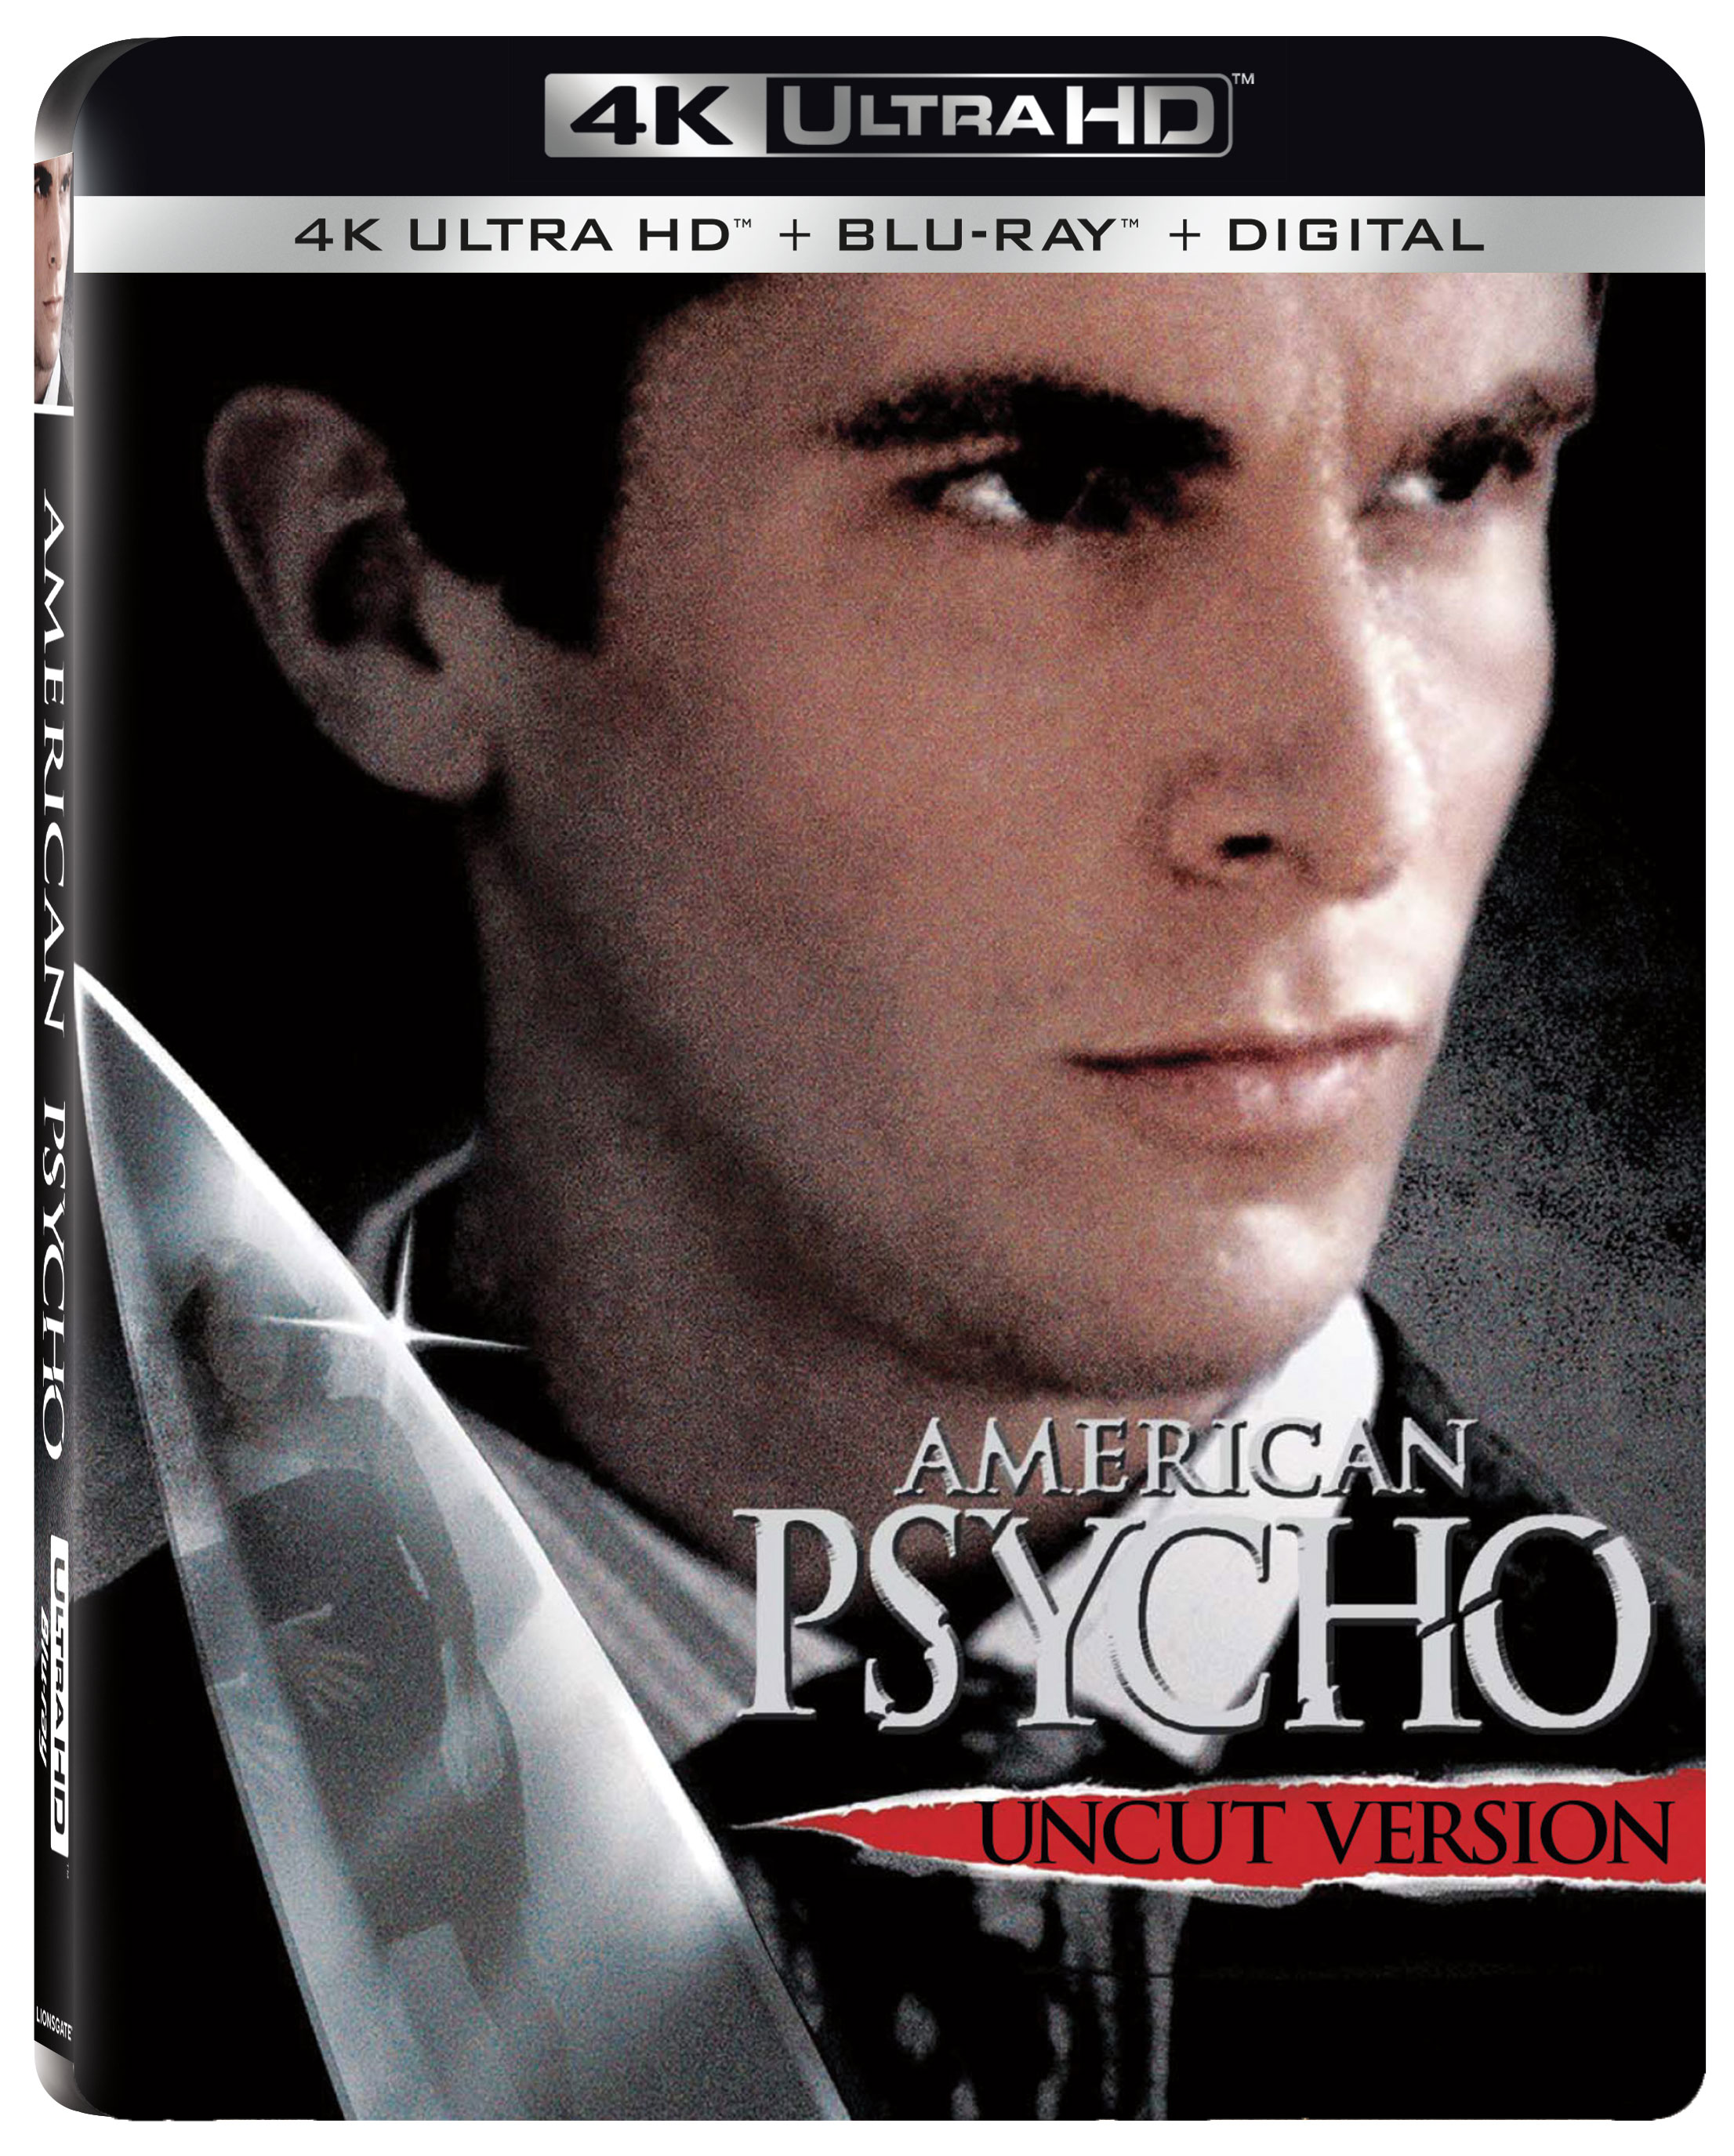 American Psycho 4K Ultra HD Review, American Psycho (2000